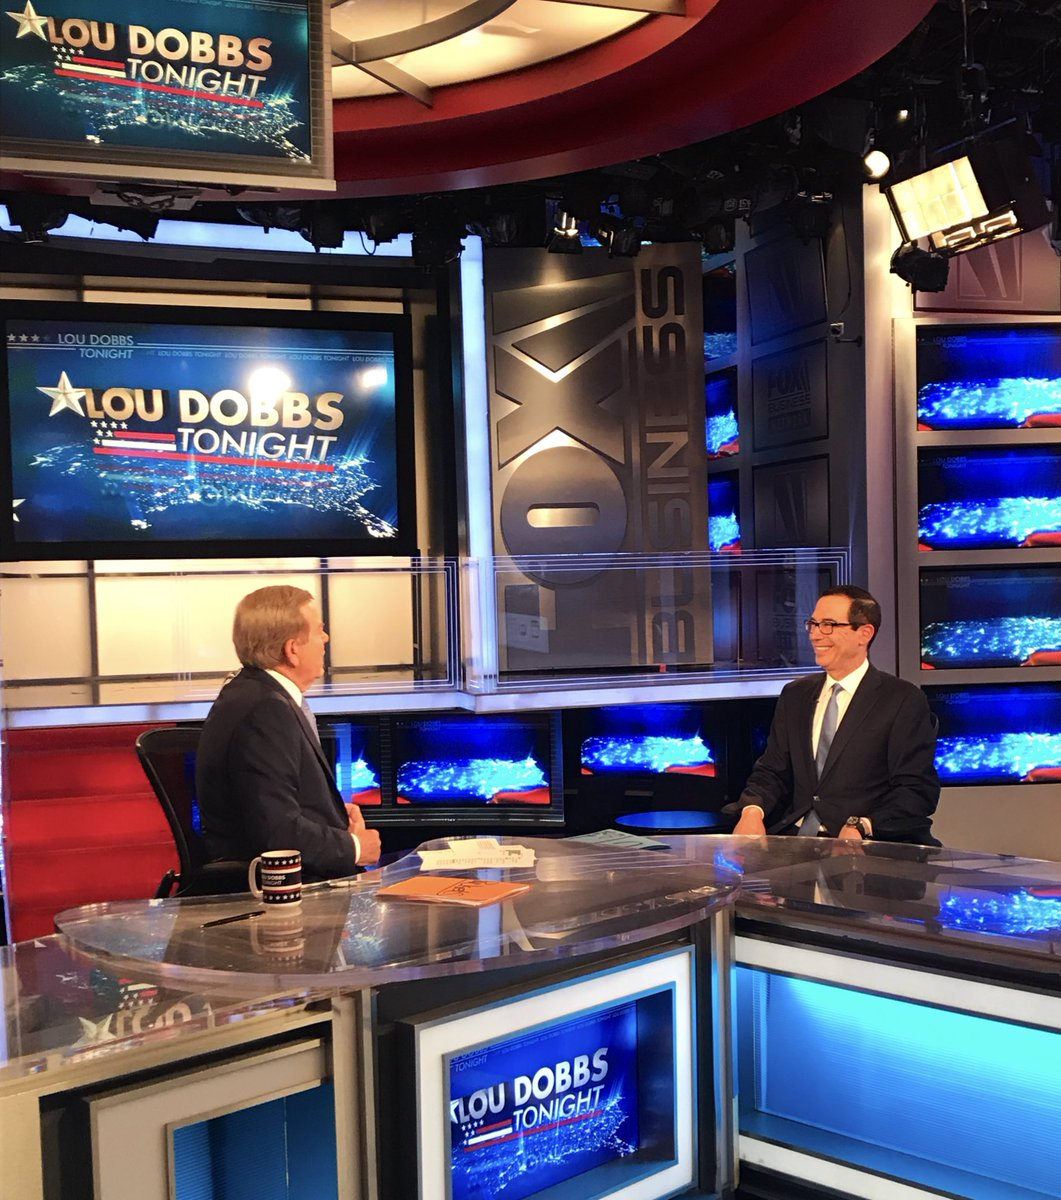 Joined @loudobbs tonight in New York to discuss trade, Iran, #UNGA2019, and the strong US economy.